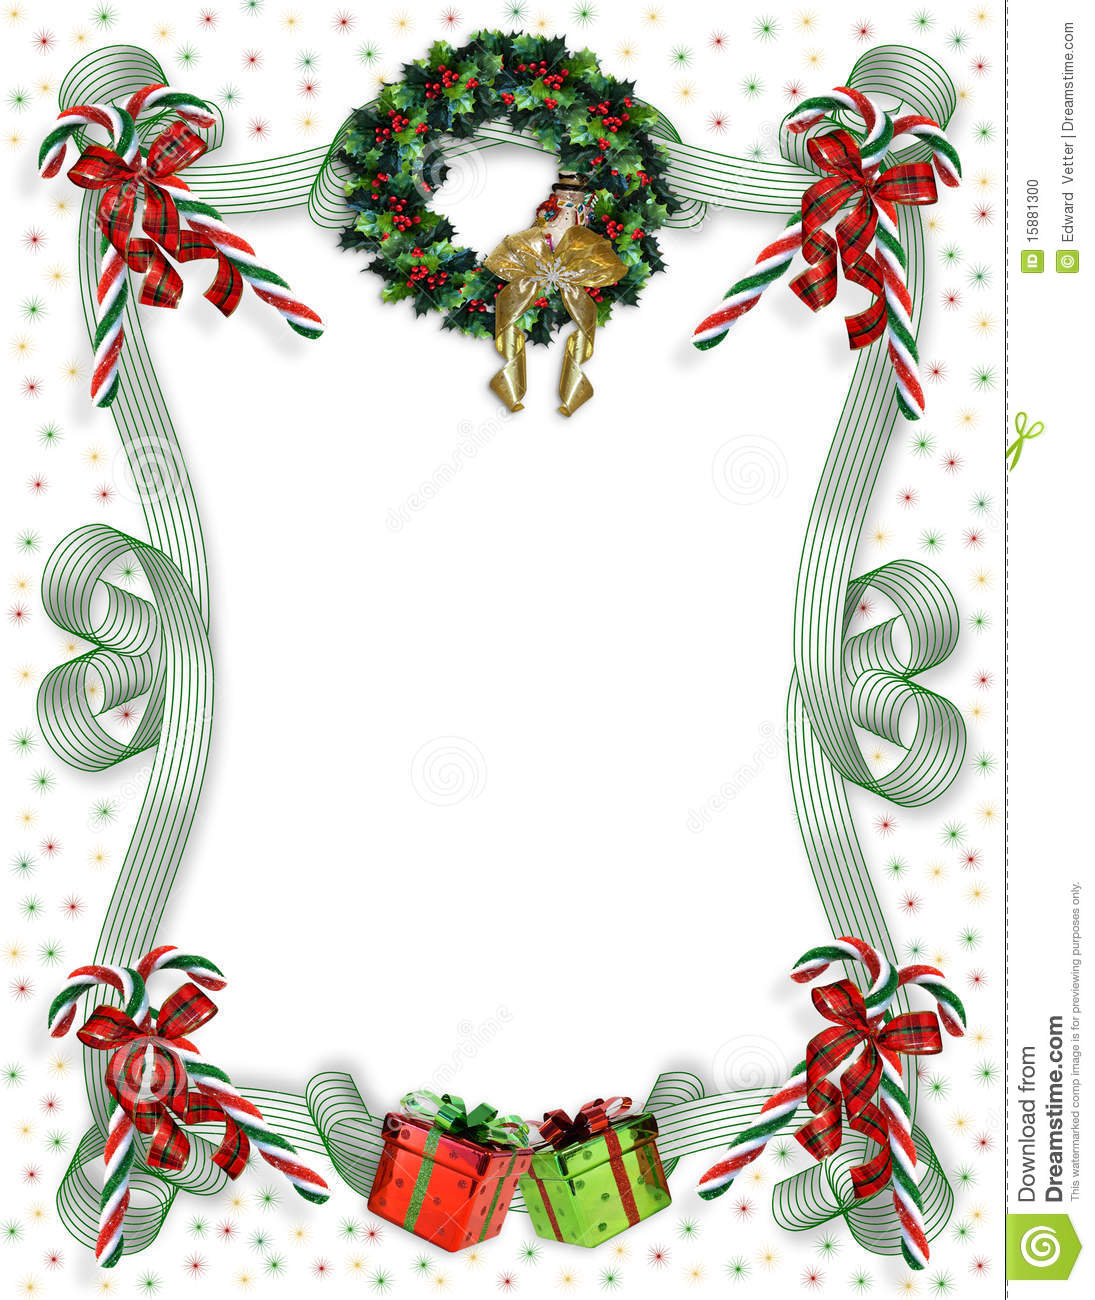 christmas border traditional stock photo image 15881300 christmas border traditional